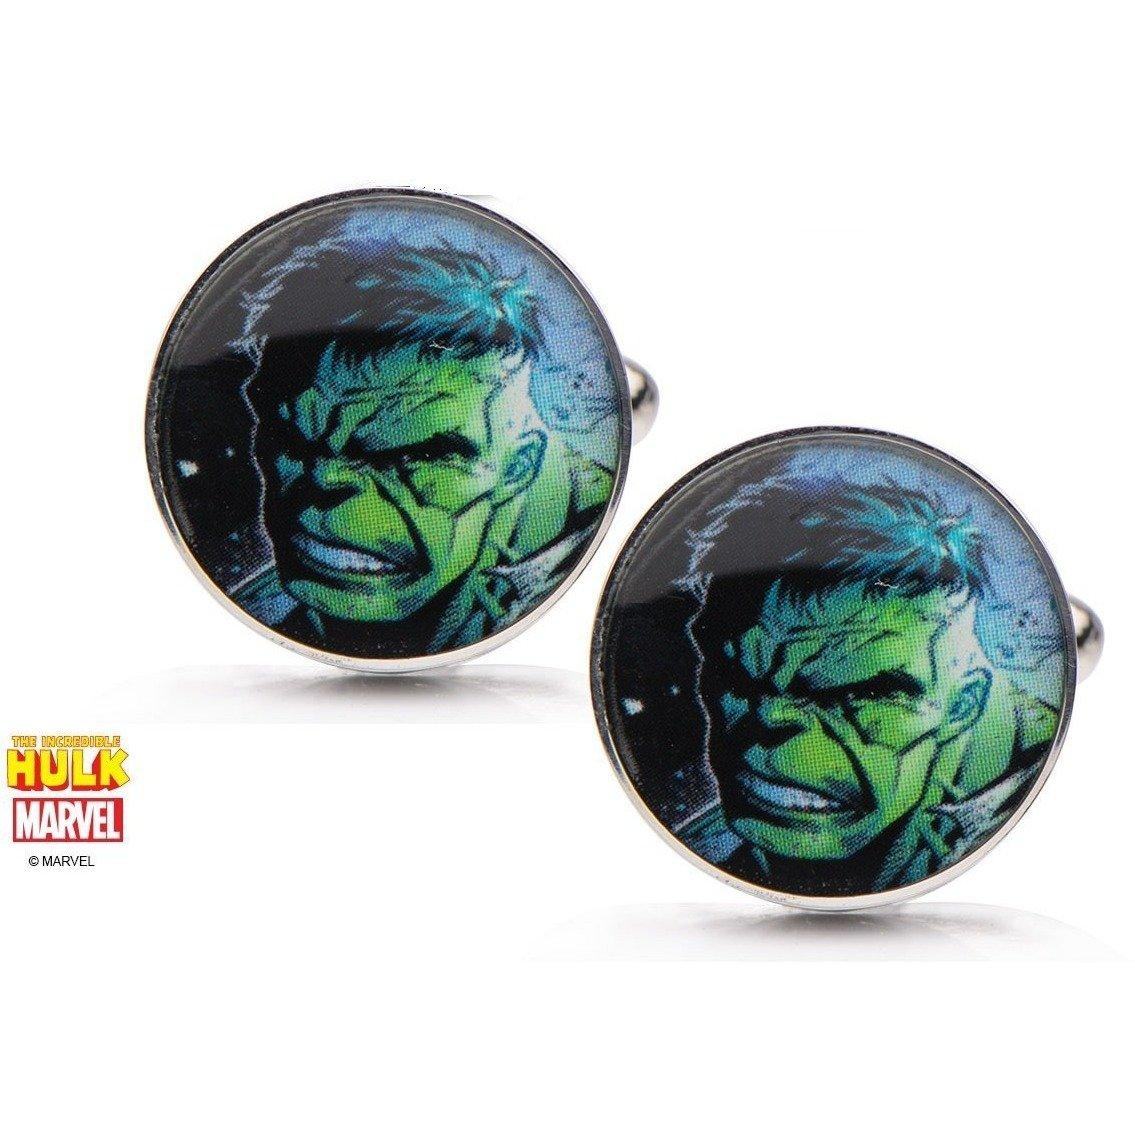 Hulk Face Cufflinks in Stainless Steel, Novelty Cufflinks, Cuffed.com.au, CL5859, $65.00